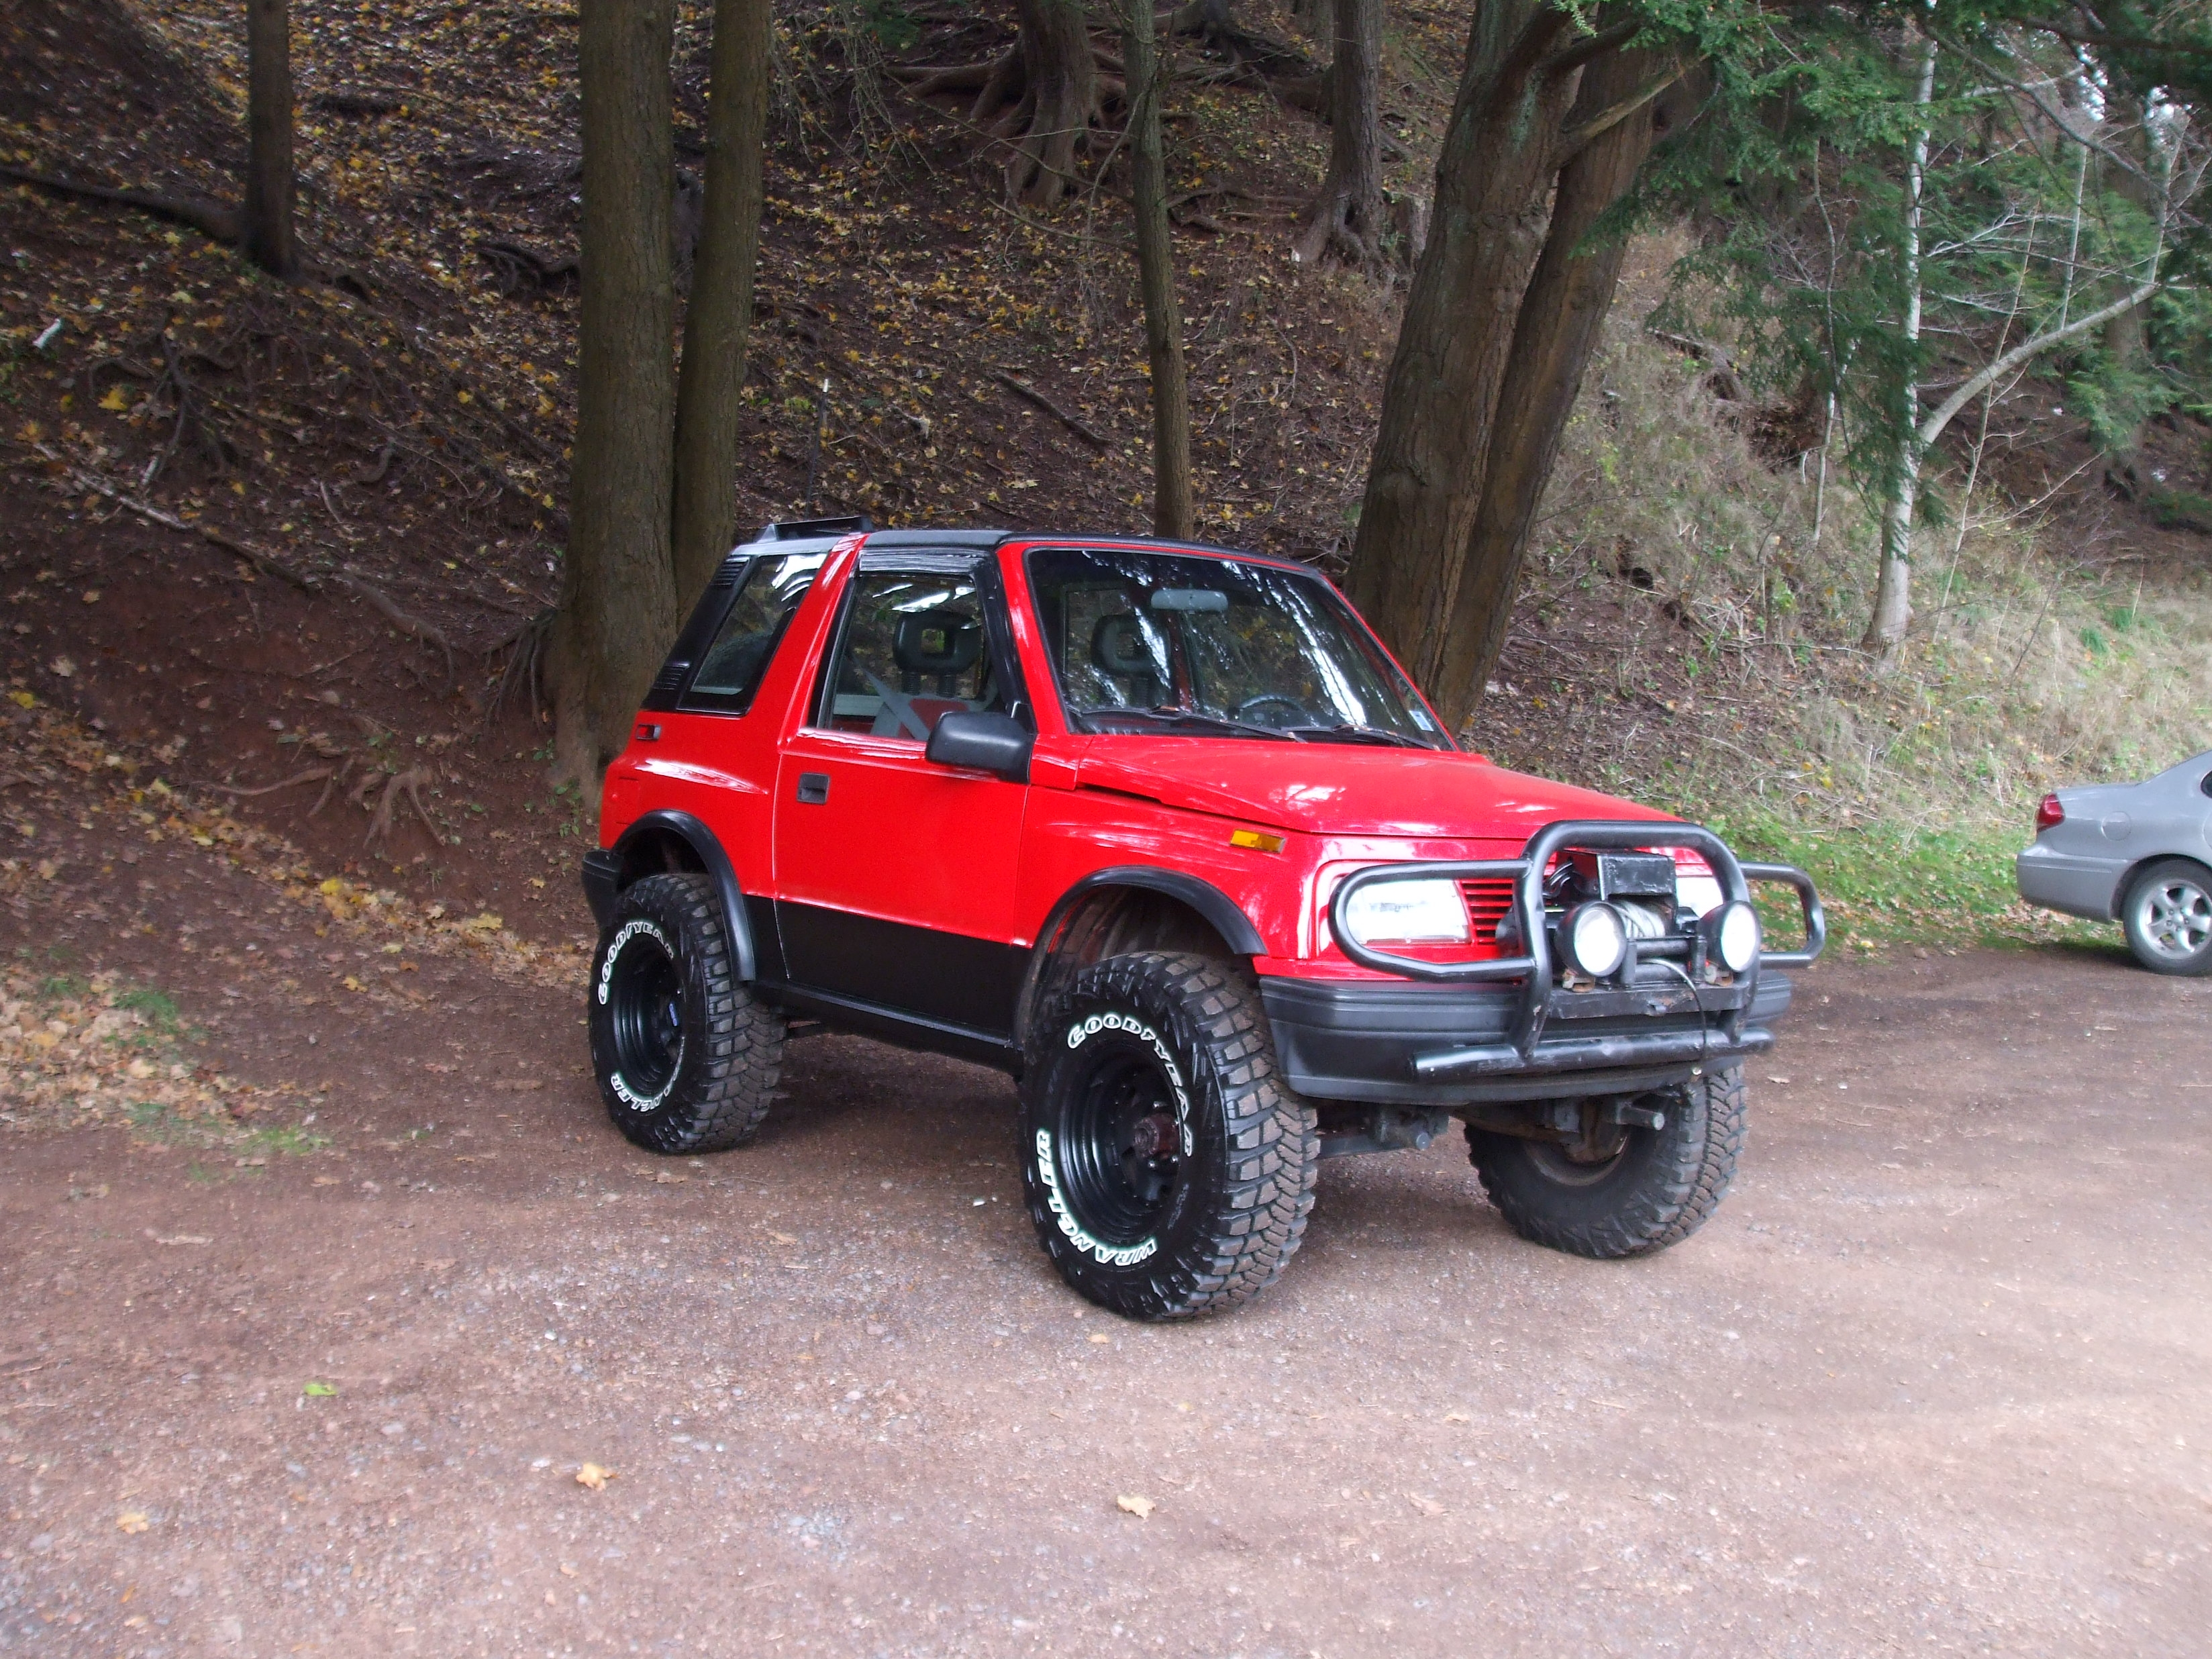 Geo Tracker Off Road besides Chevrolet Tracker Plane Car Is Sure To Earn Double Takes additionally Feature rockstarpart2 furthermore Index php furthermore File 1992 1994 Suzuki Vitara  SE416C Type2  JX softtop 02. on lifted geo tracker